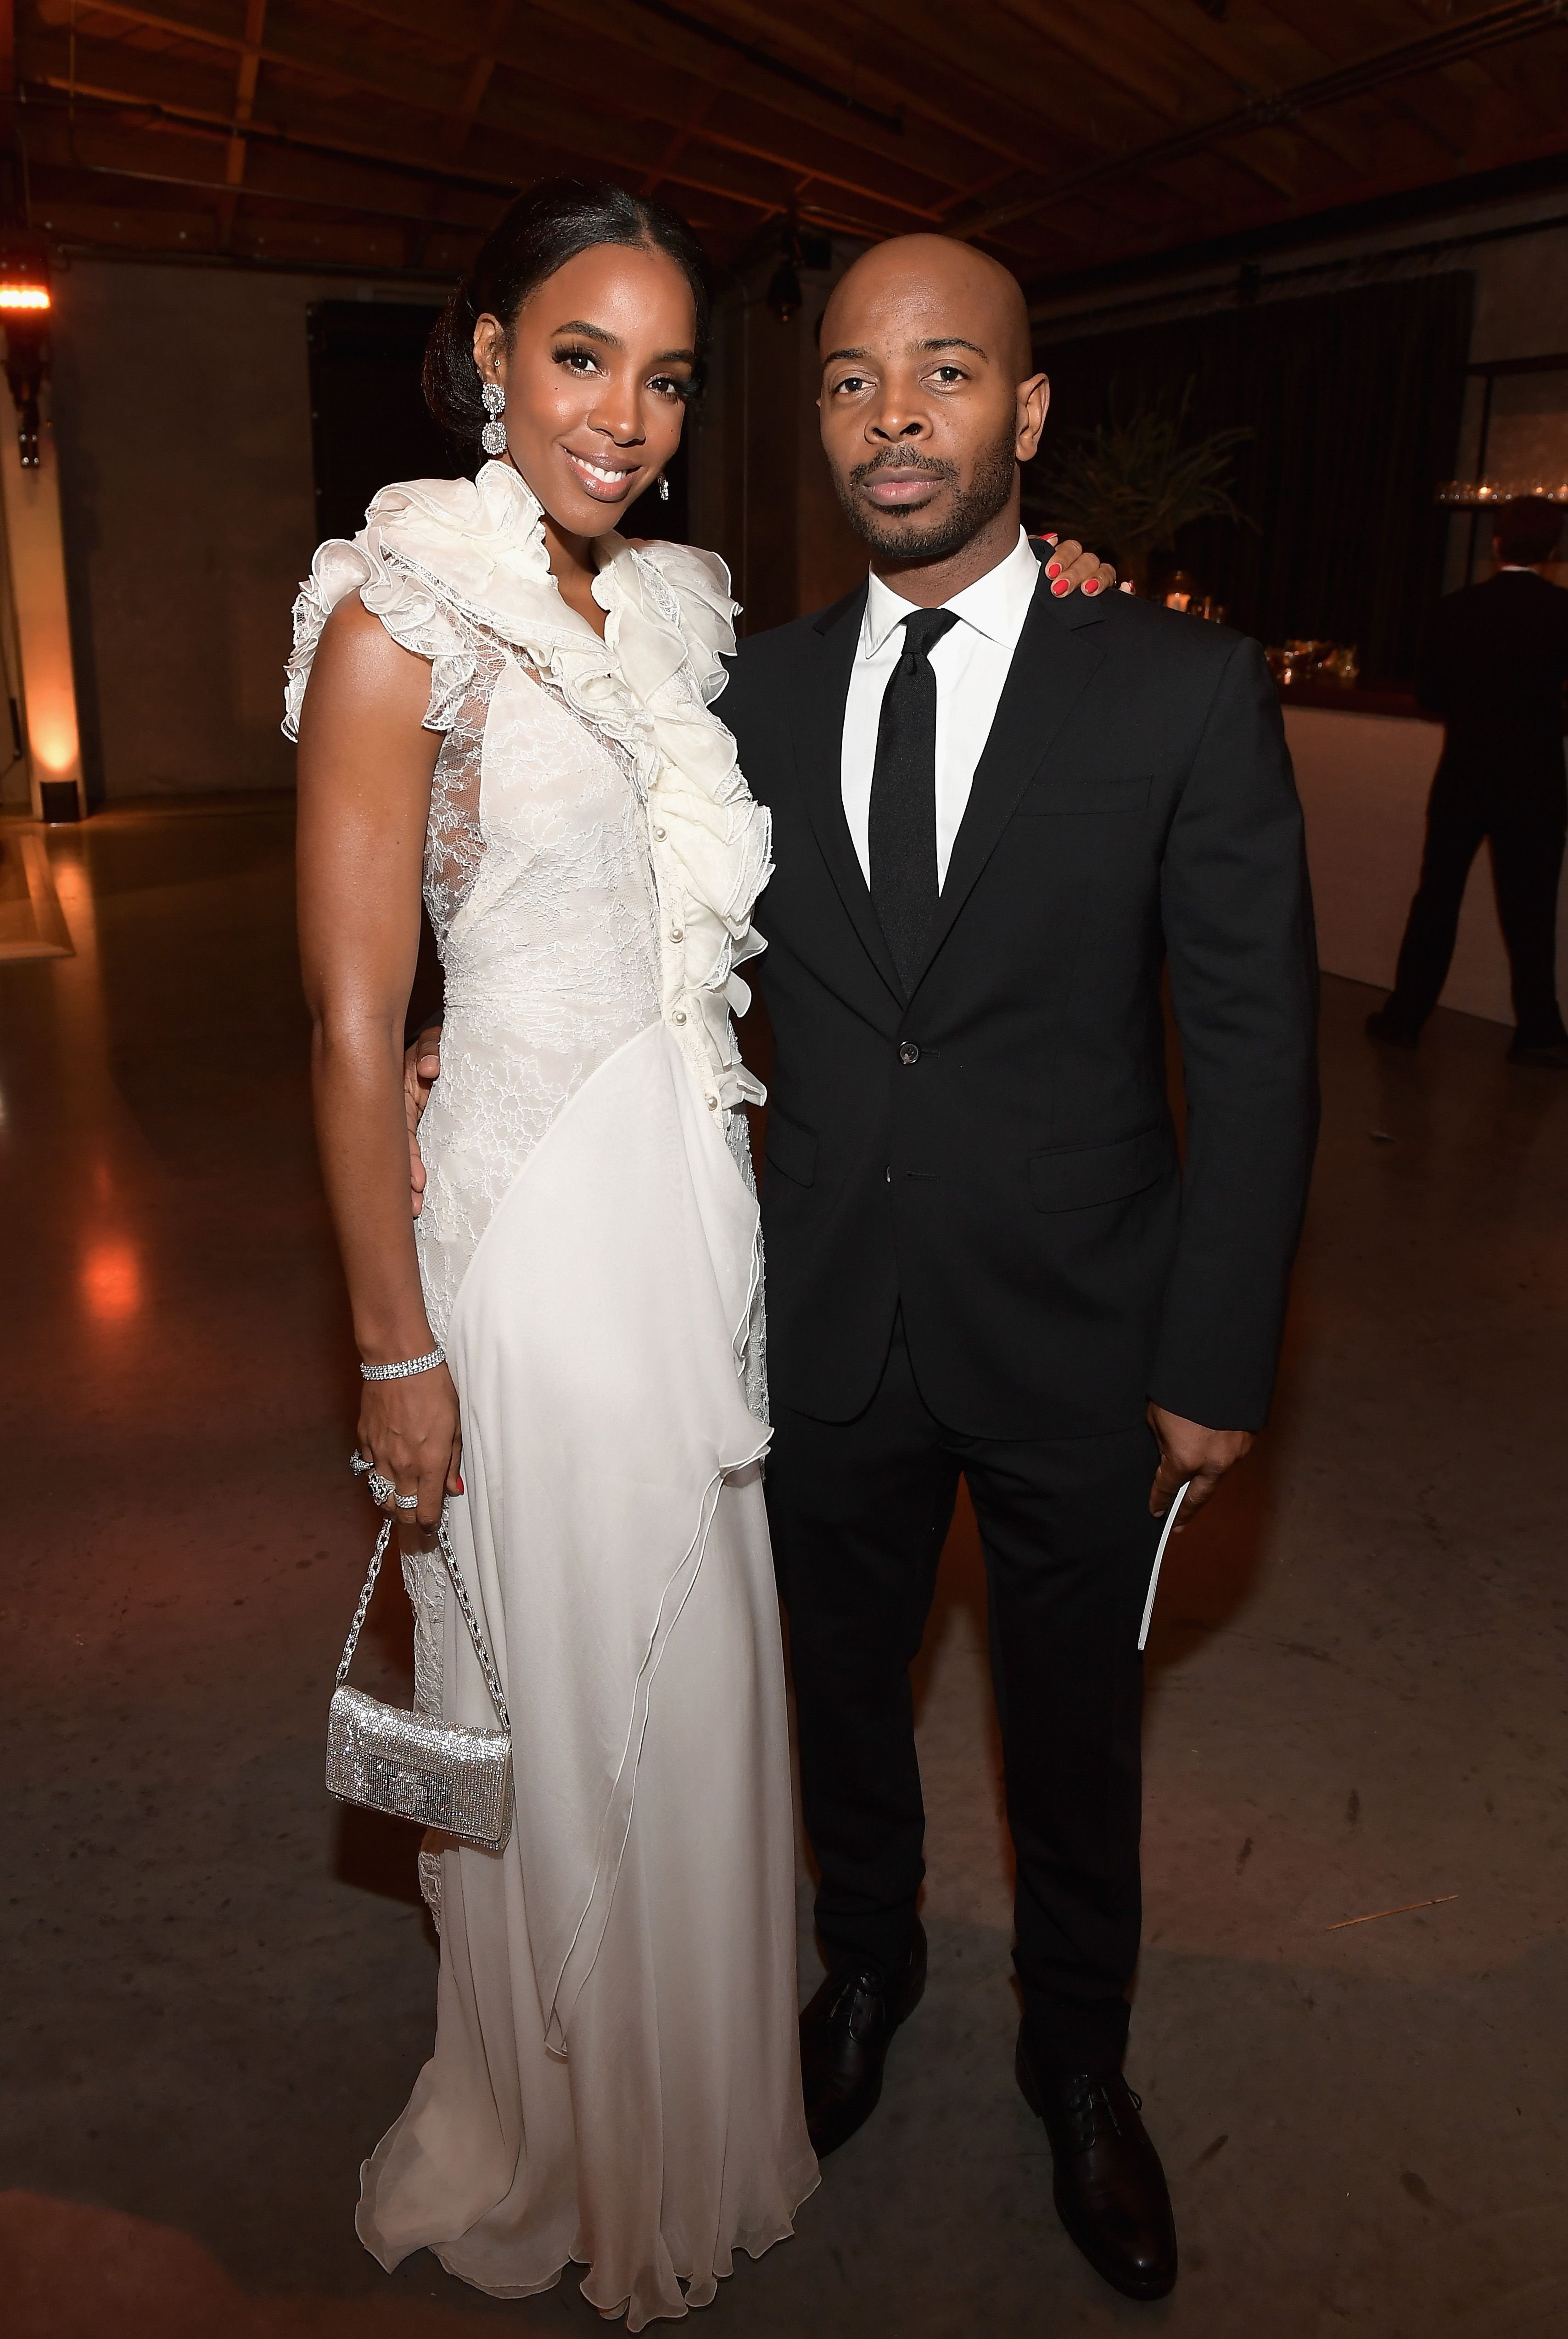 Kelly Rowland with husband Tim Weatherspoon at The 2017 Baby2Baby Gala presented by Paul Mitchell in Los Angeles, California | Photo: Getty Images